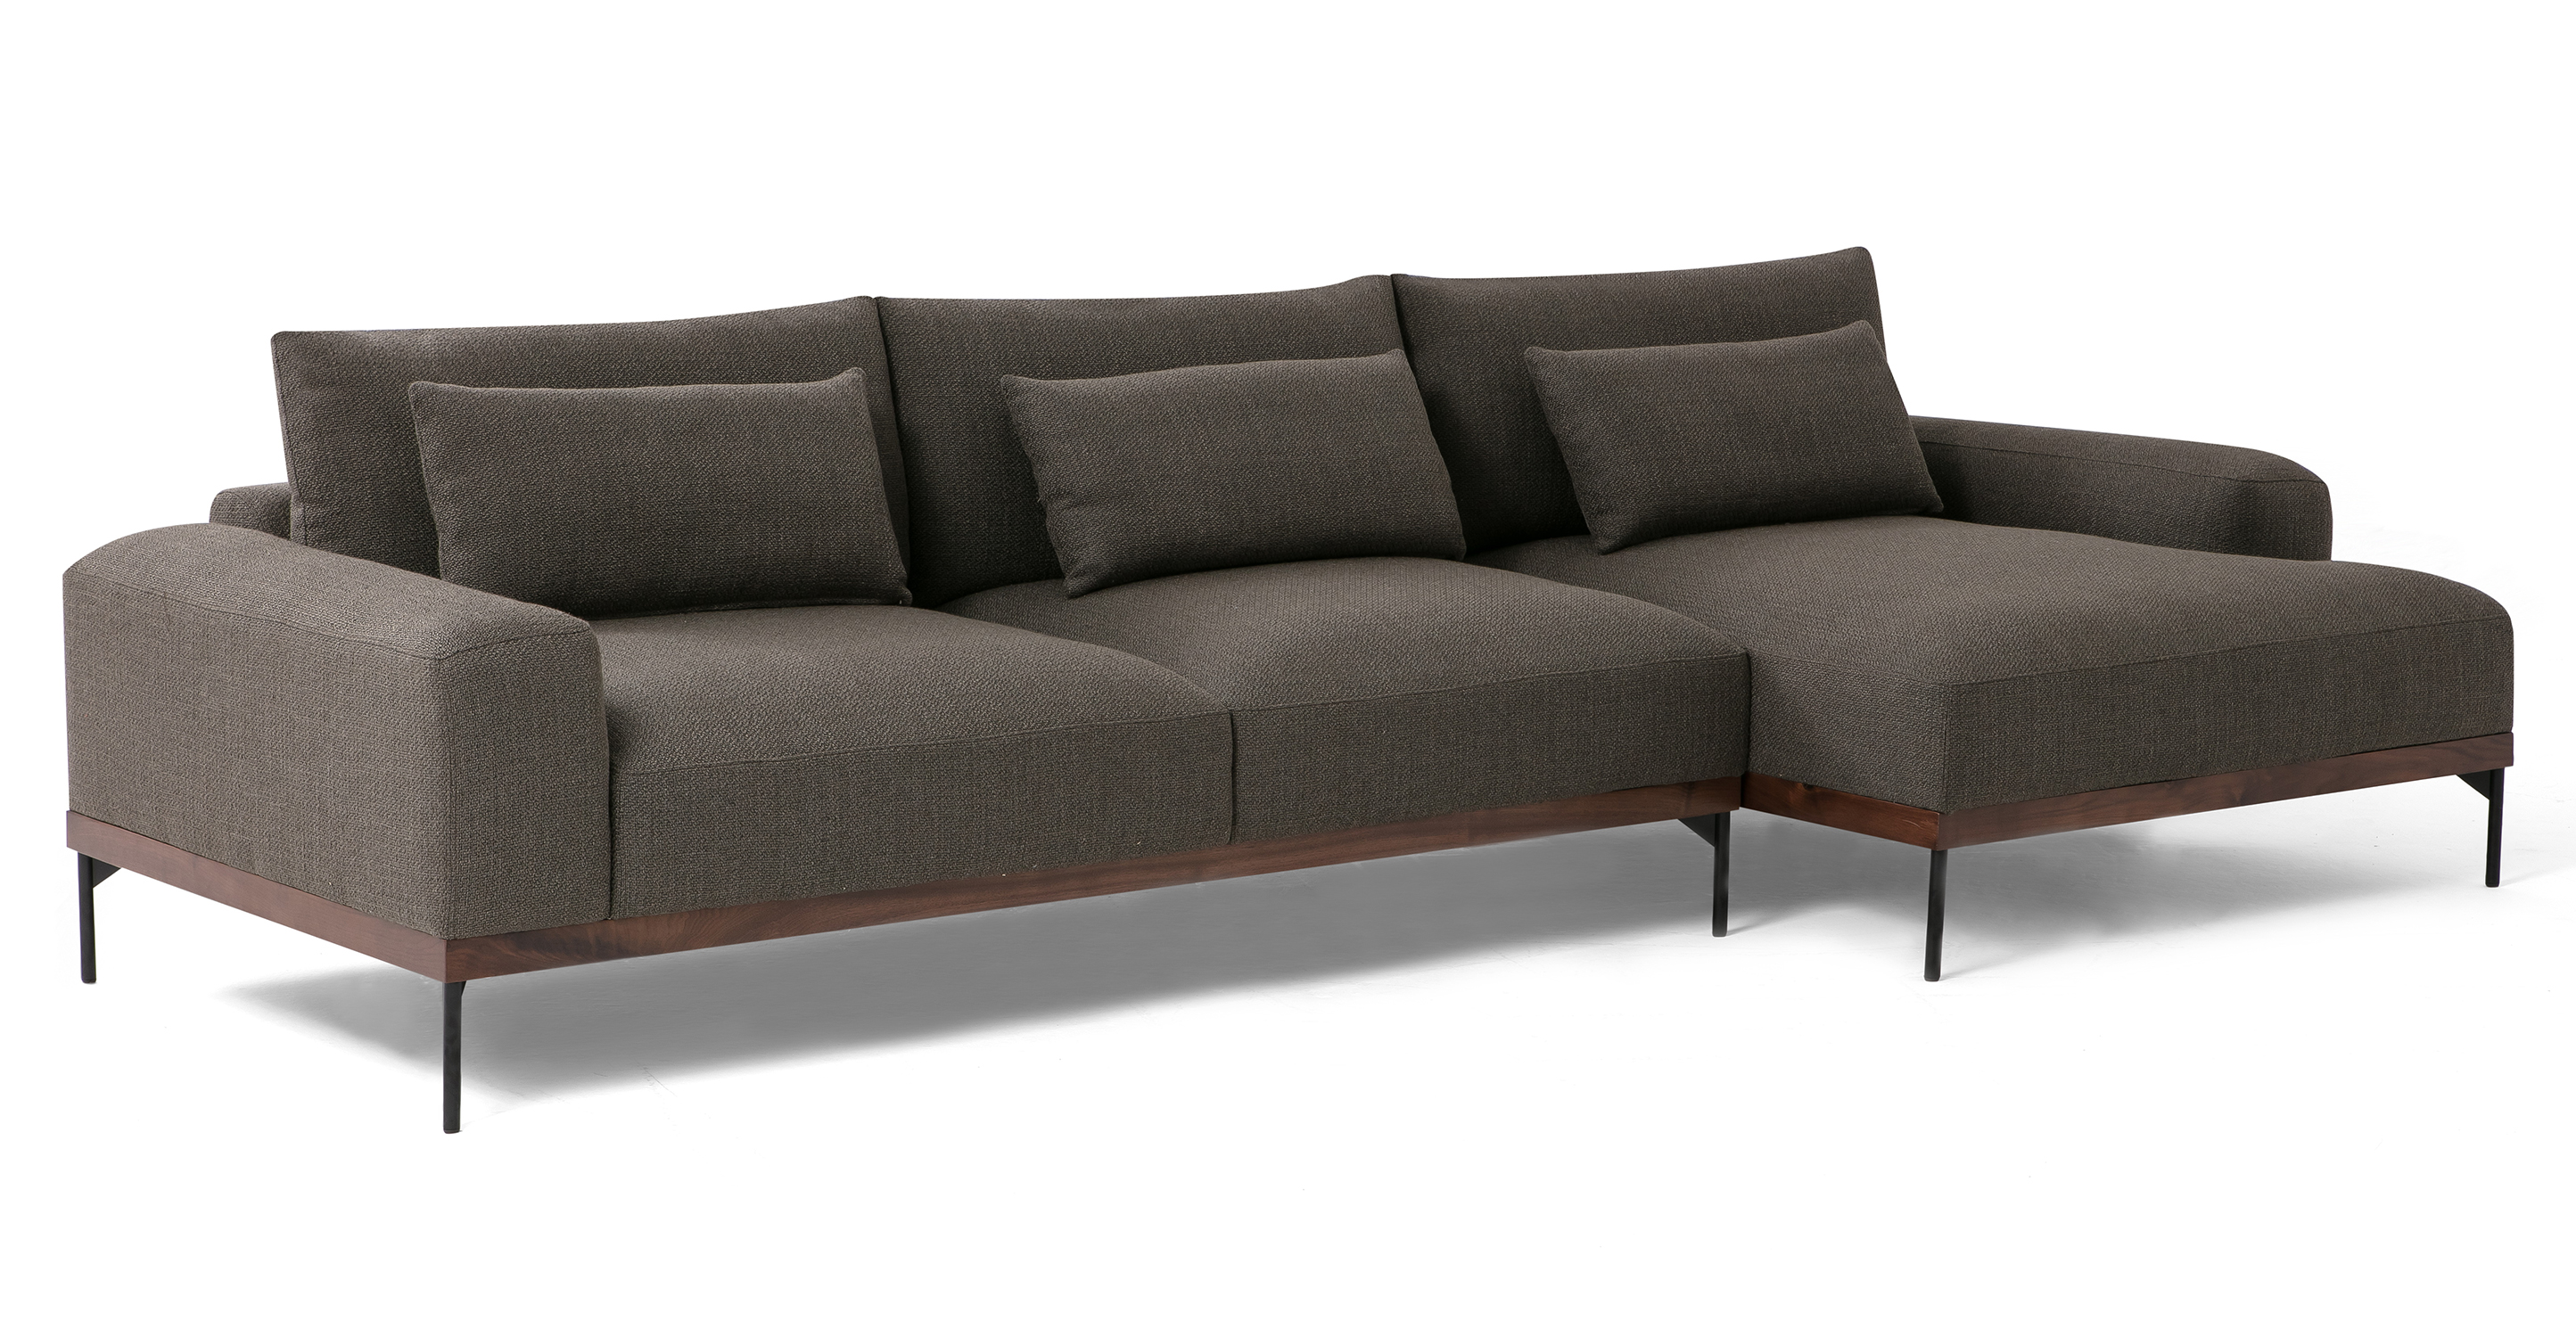 """Tate 122"""" Fabric Sofa Sectional Right, Nuit Boucle"""